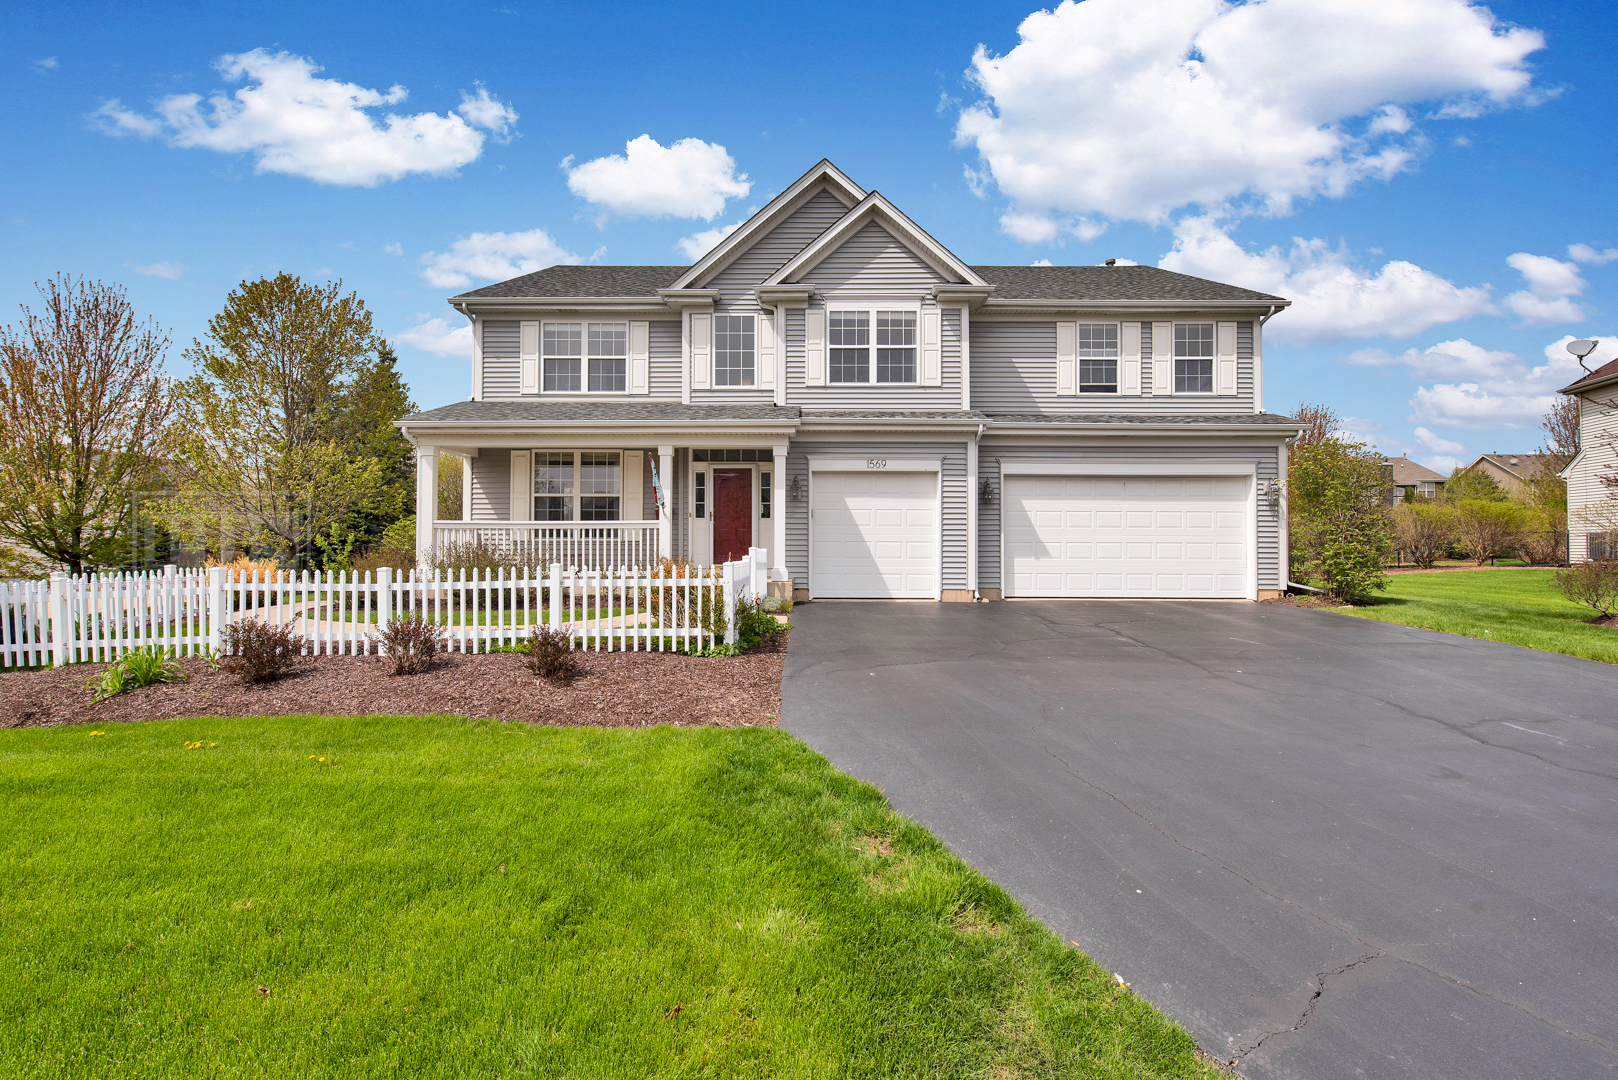 Photo for 1569 Grouse Way, CRYSTAL LAKE, IL 60014 (MLS # 10374266)